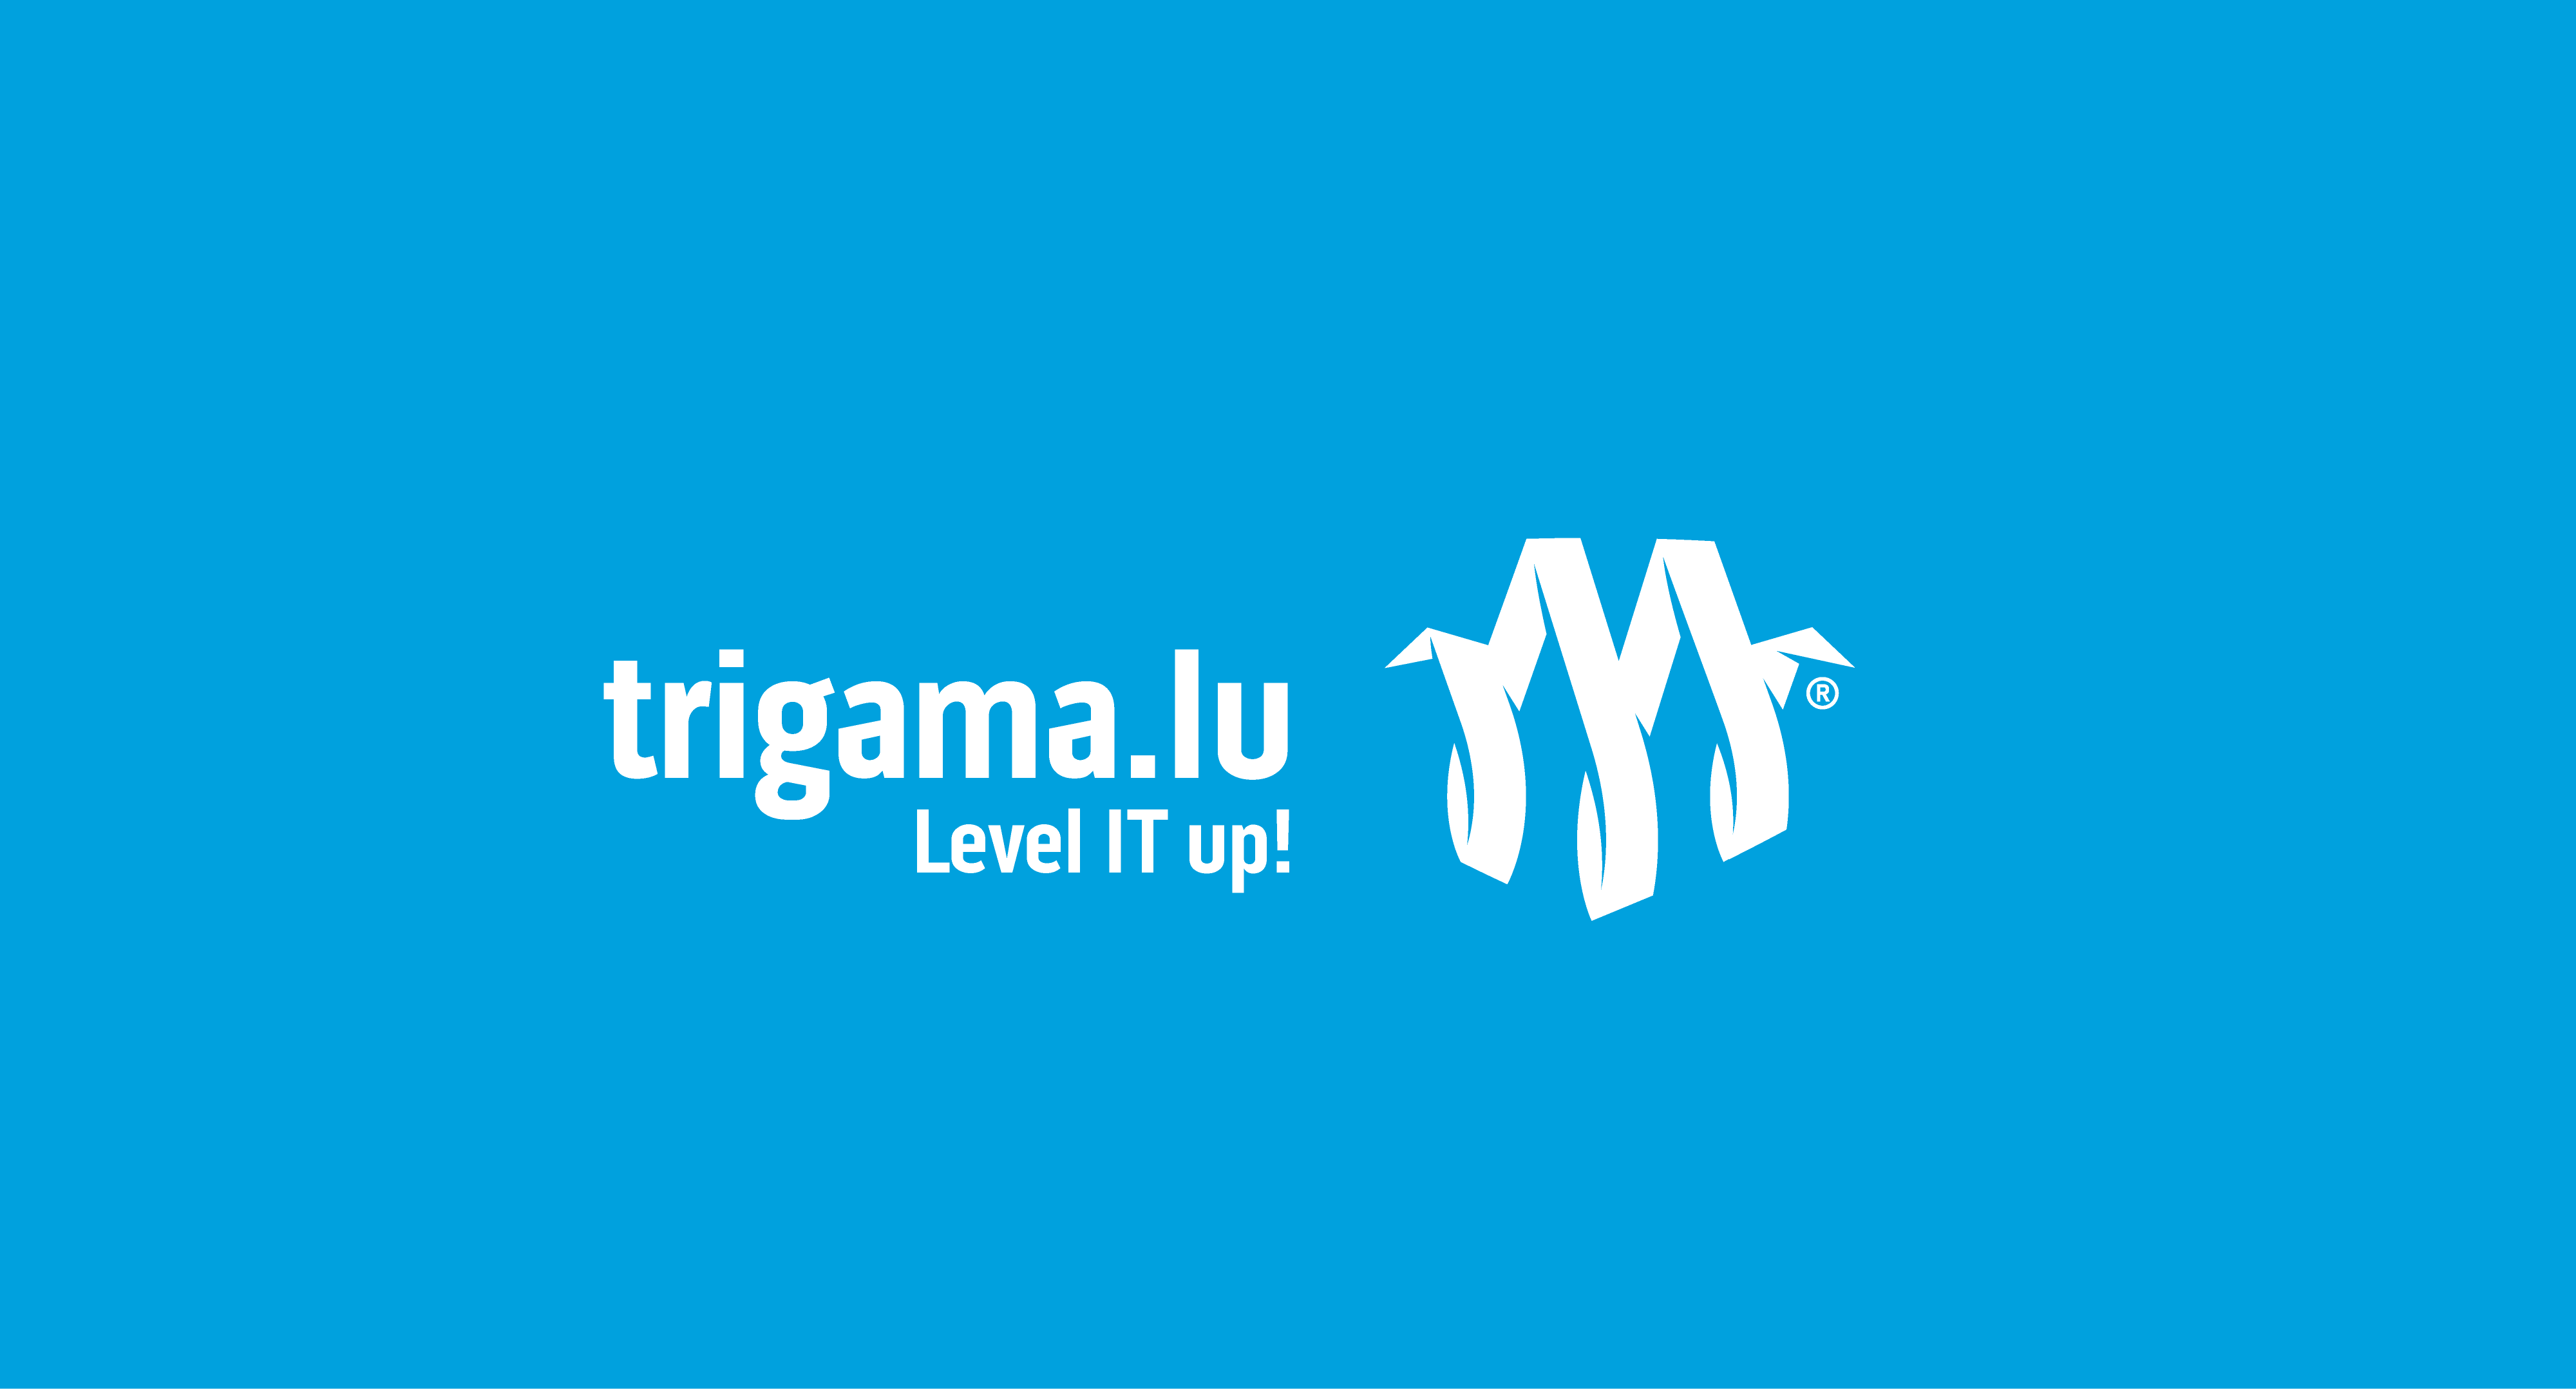 Trigama expands